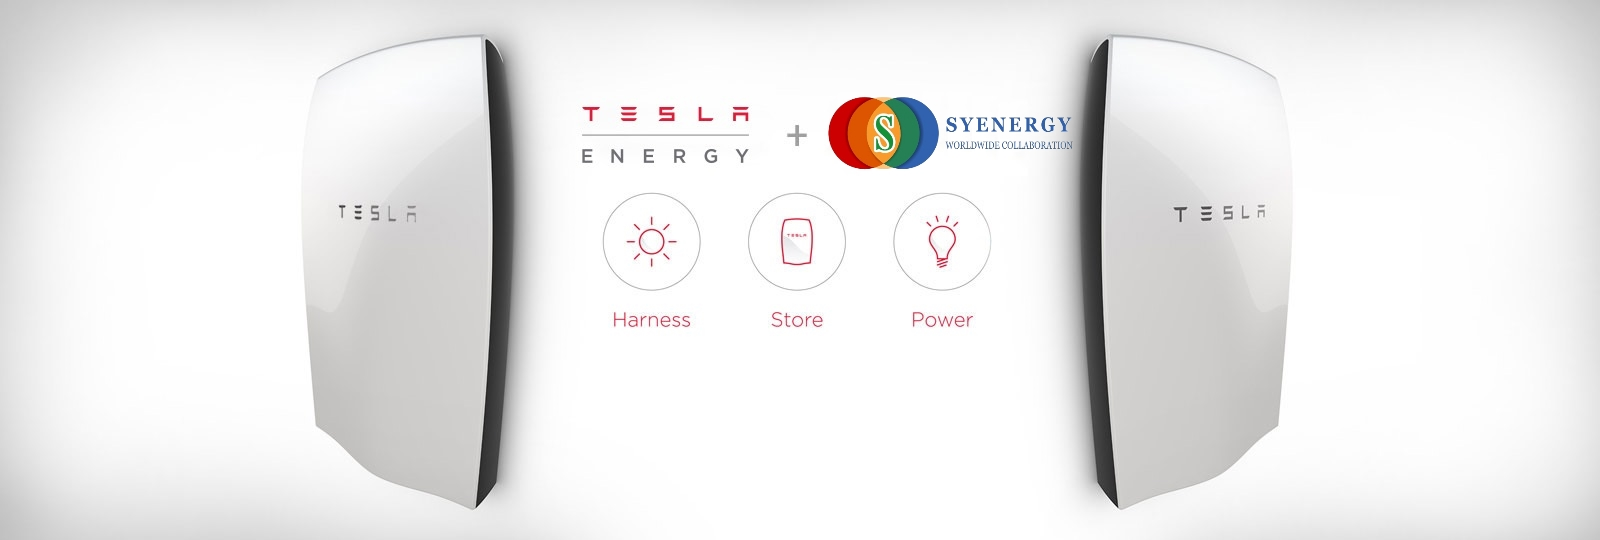 купить Tesla Powerwall, Tesla Powerwall купить Украина, Tesla Powerwall цена Украина, купить Tesla Home Battery, Tesla Powerpack цена Украина